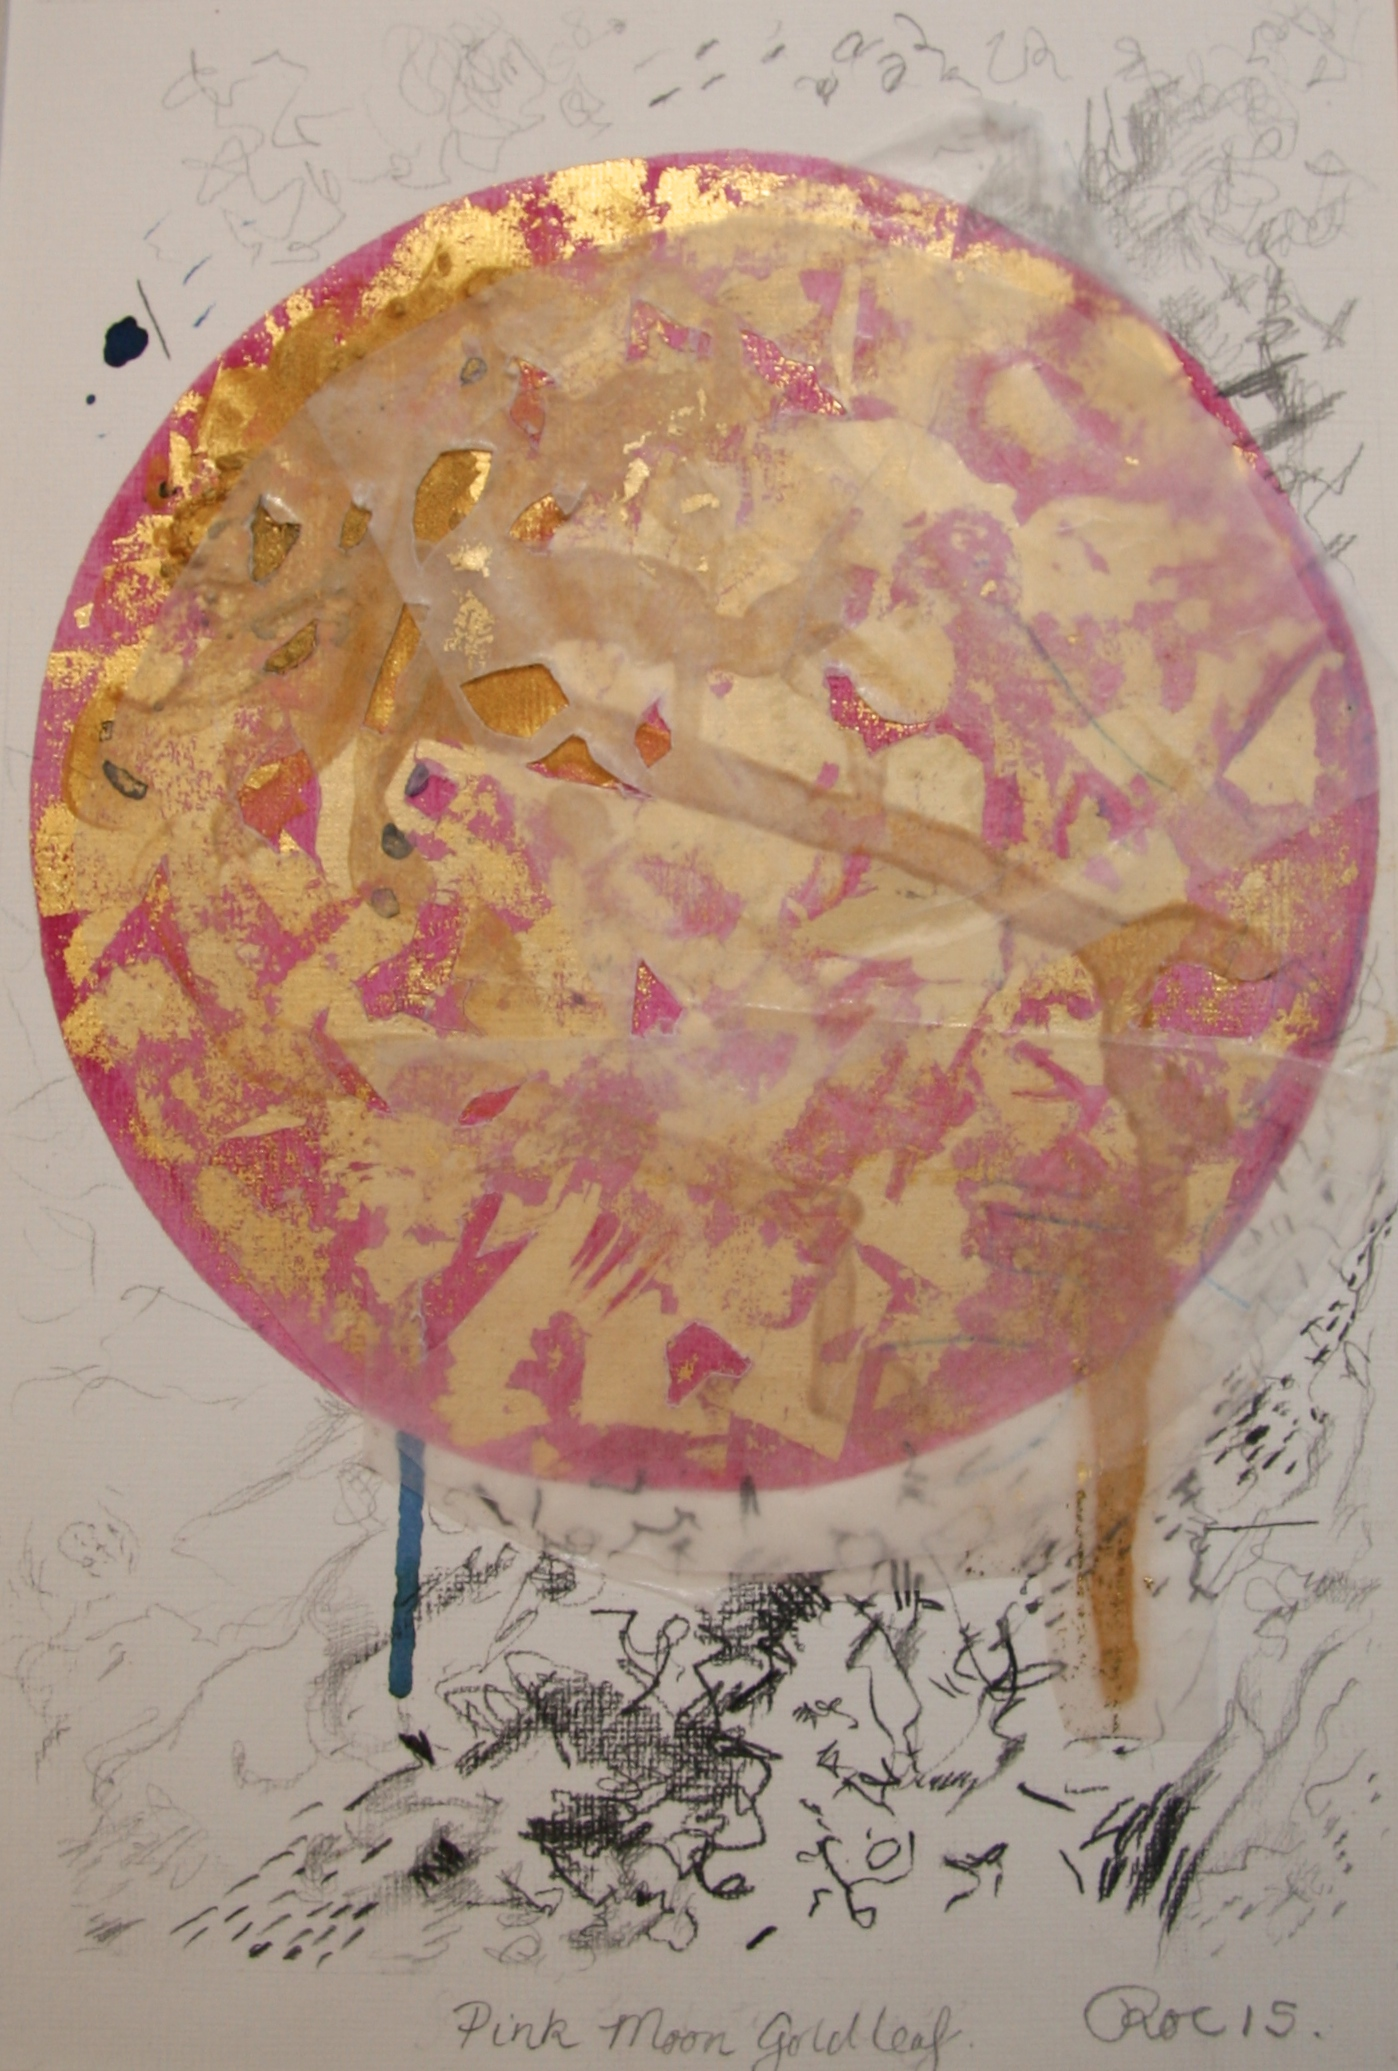 Pink Moon.  Gold Leaf Gold and metal leaf, Tinted shellac and mixed media on paper. 210 x 297mm. 2015.